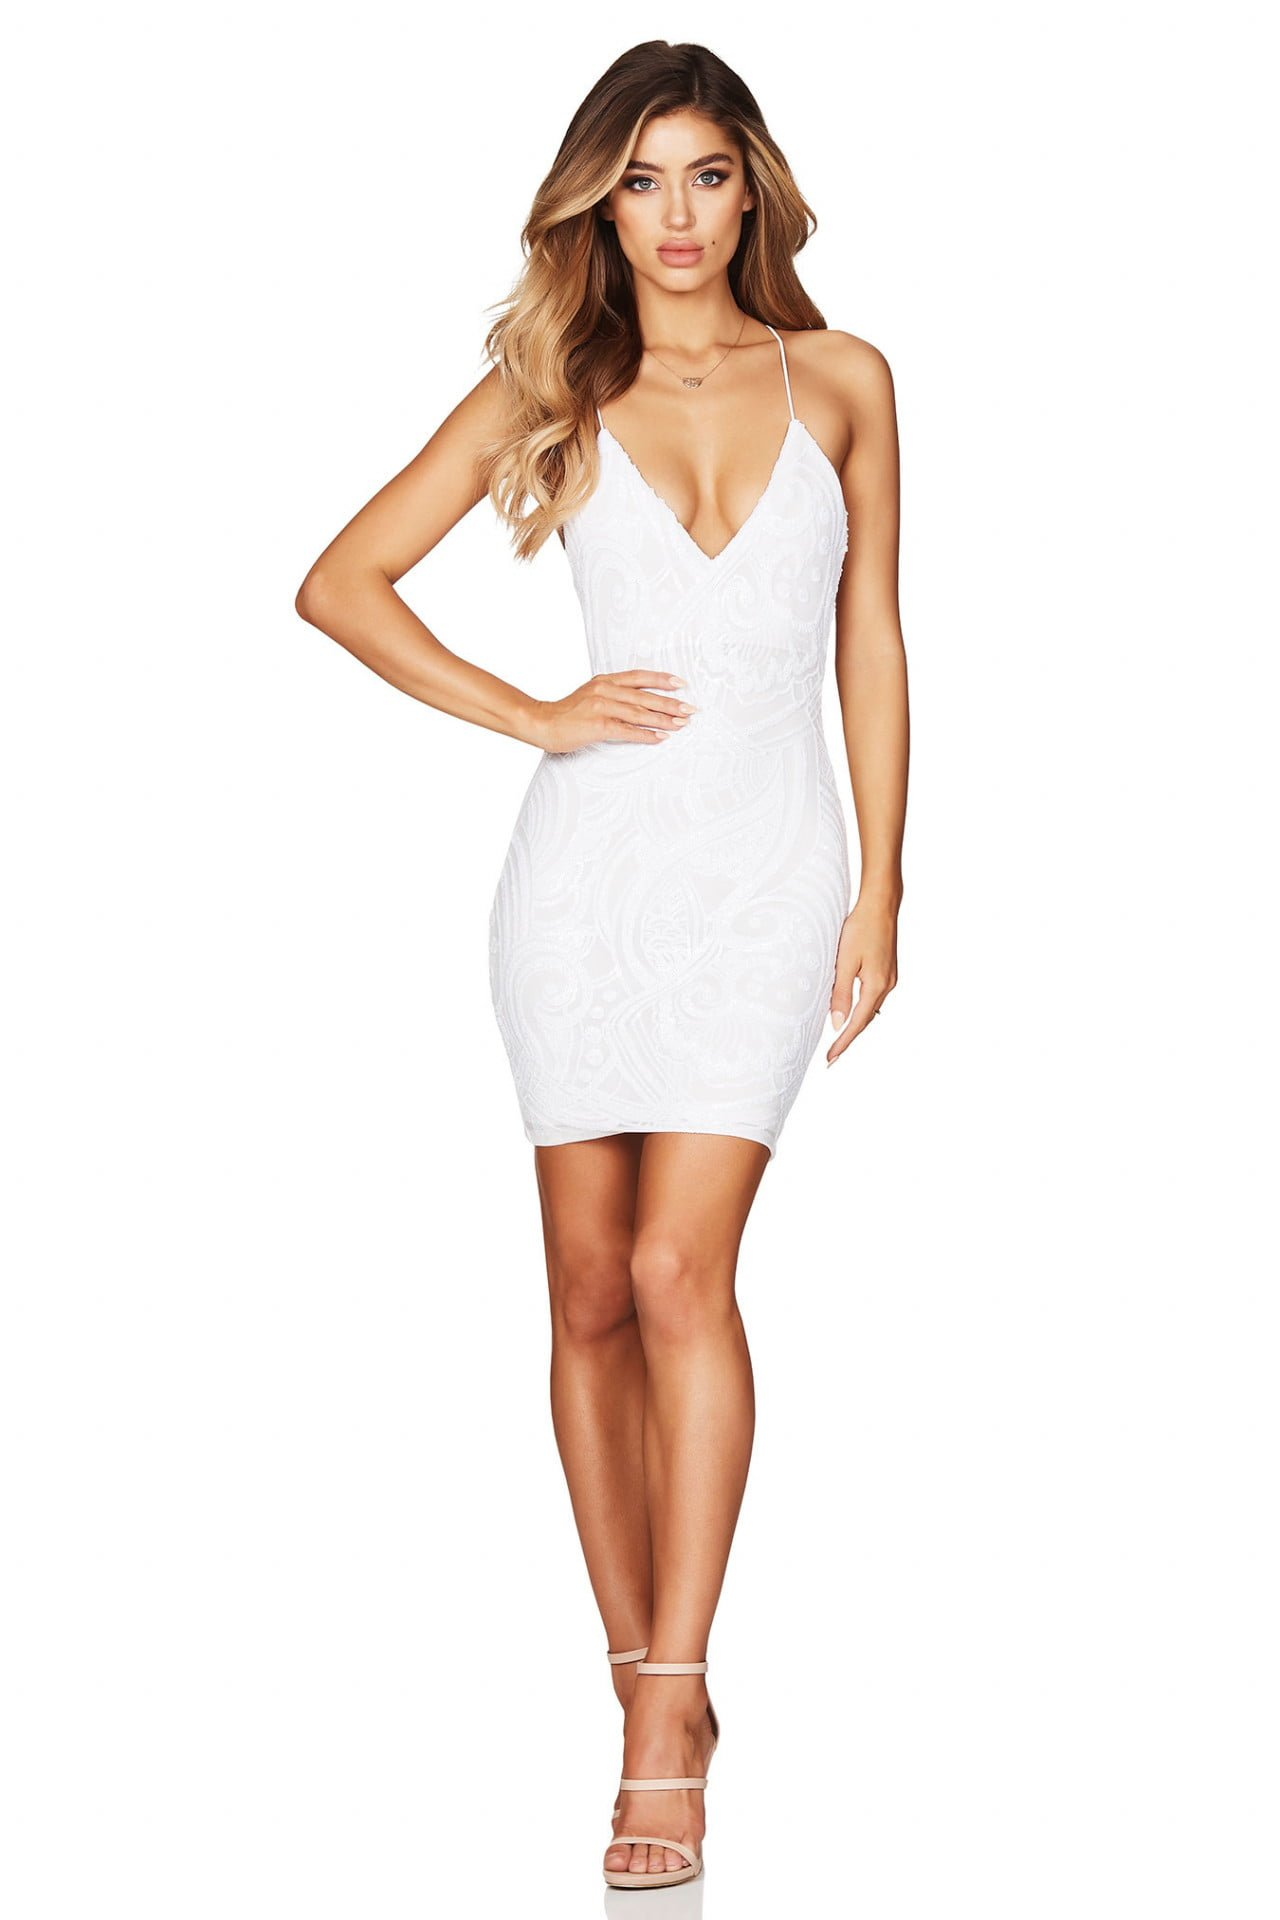 Nookie Sensation Mini Backless, Mini, V-Neck White